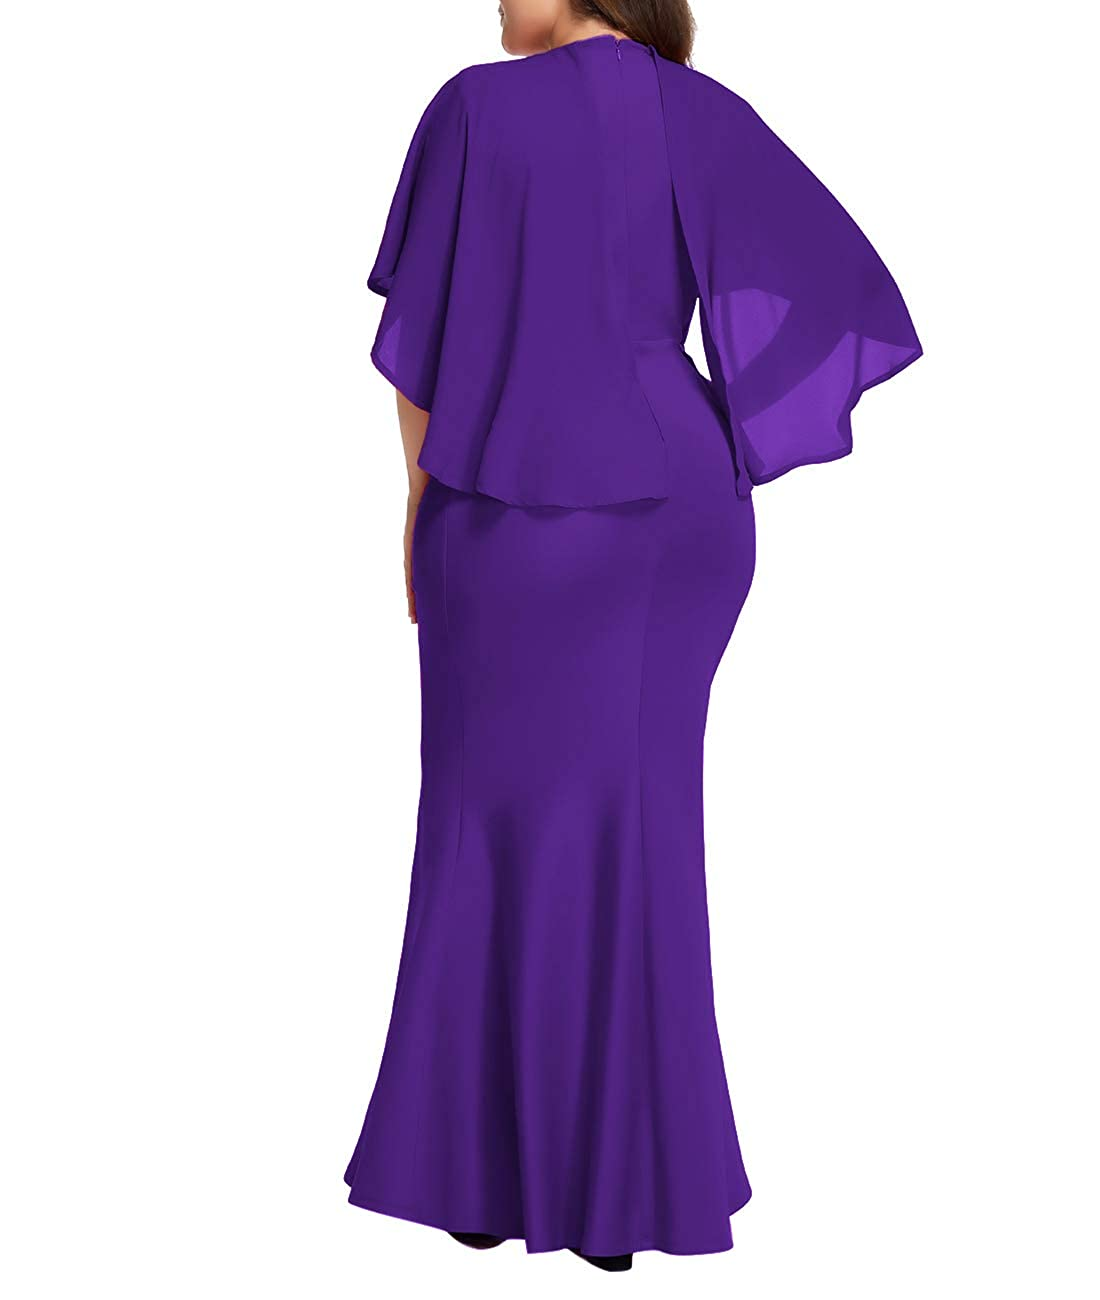 222aa12e250 Purple Plus Size Evening Gown - Gomes Weine AG